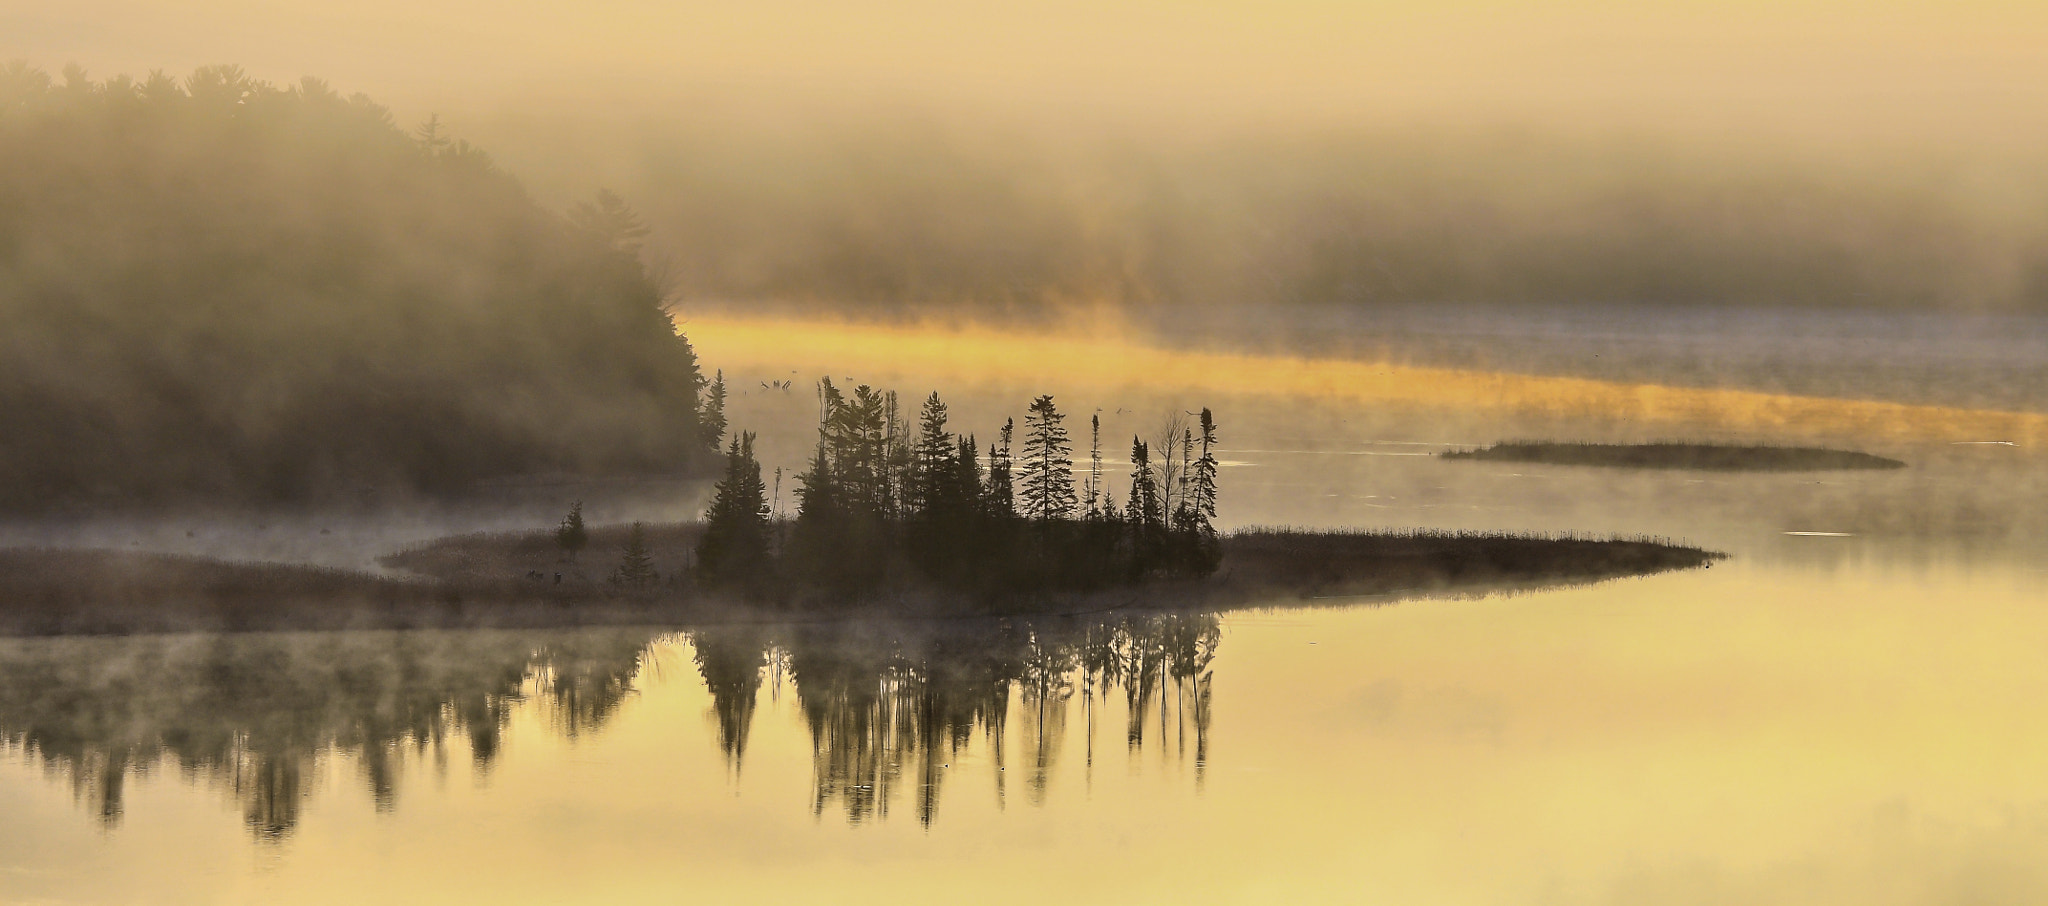 Photograph Foggy Morning Sunrise. by Ed Hall on 500px